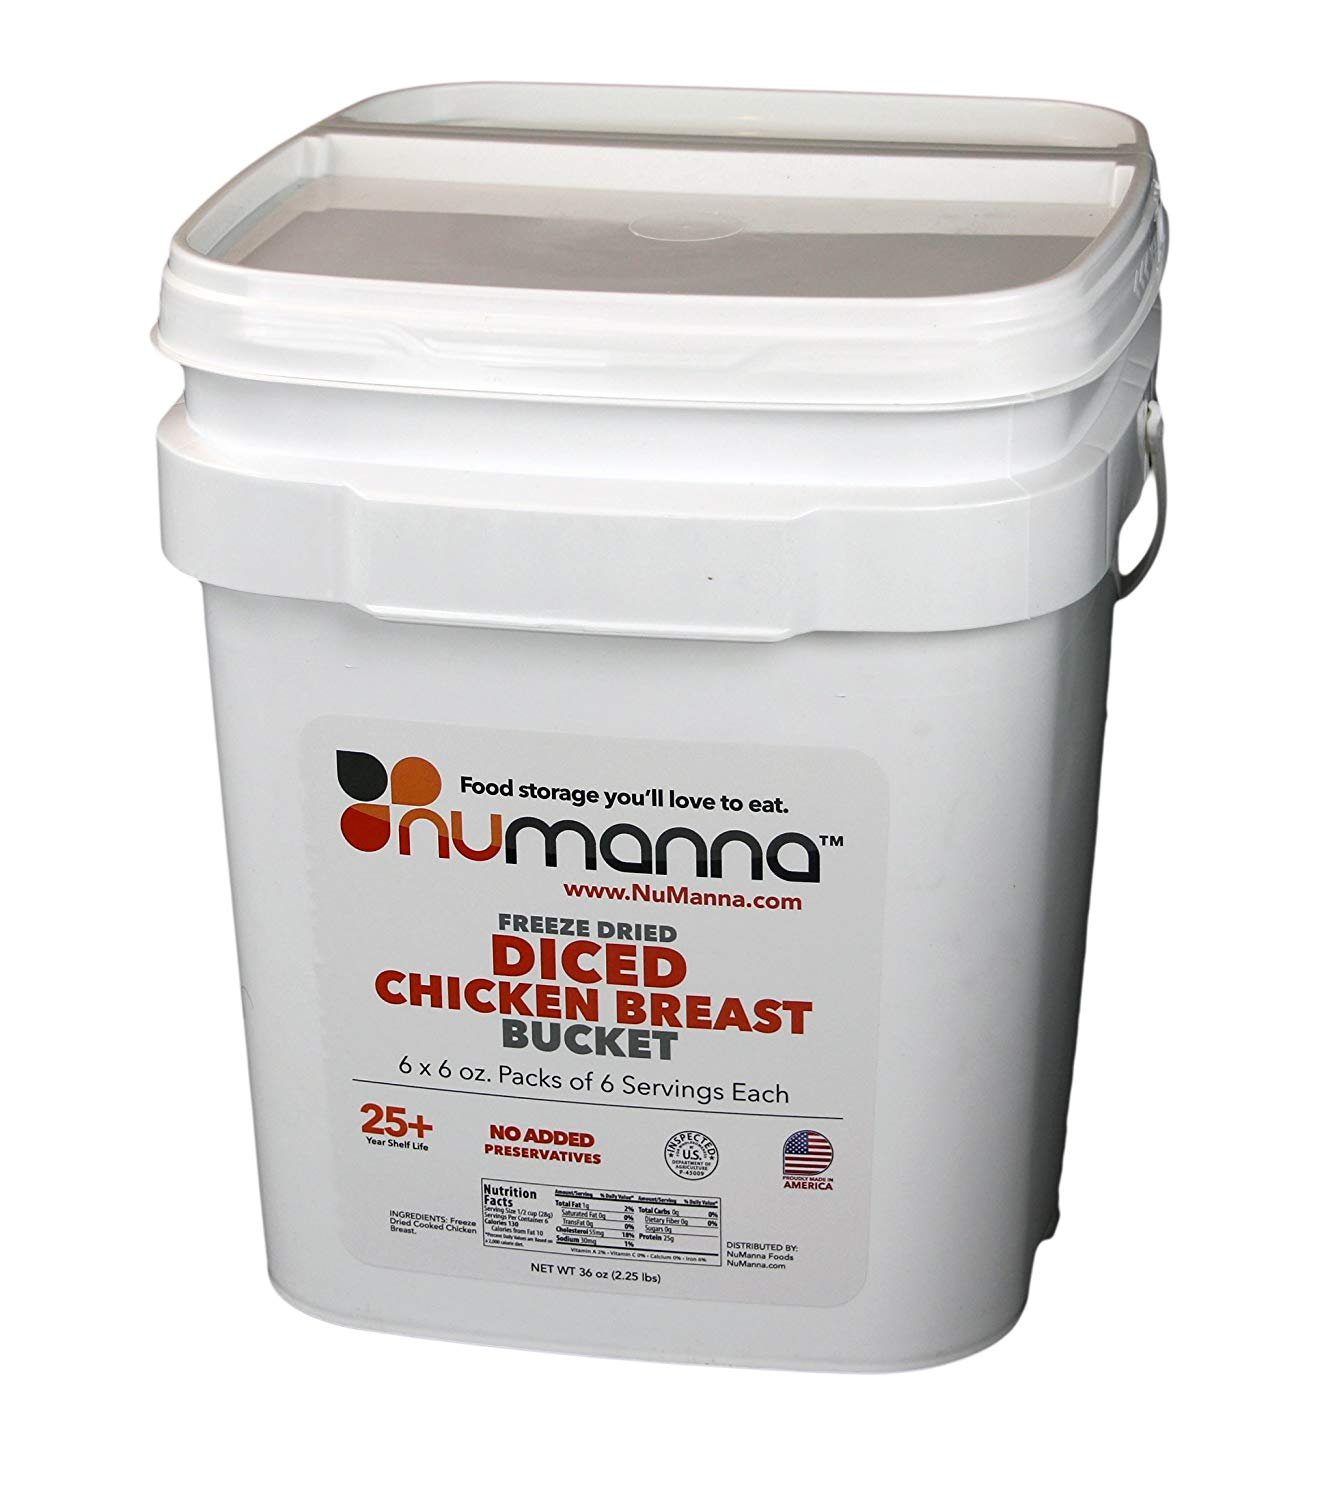 NuManna Seasoned Diced Chicken Breast Bucket, 36 Meals - Emergency Survival Food Storage Kit, Separate Rations, in a Bucket, 25 Plus Year Shelf Life, GMO-Free